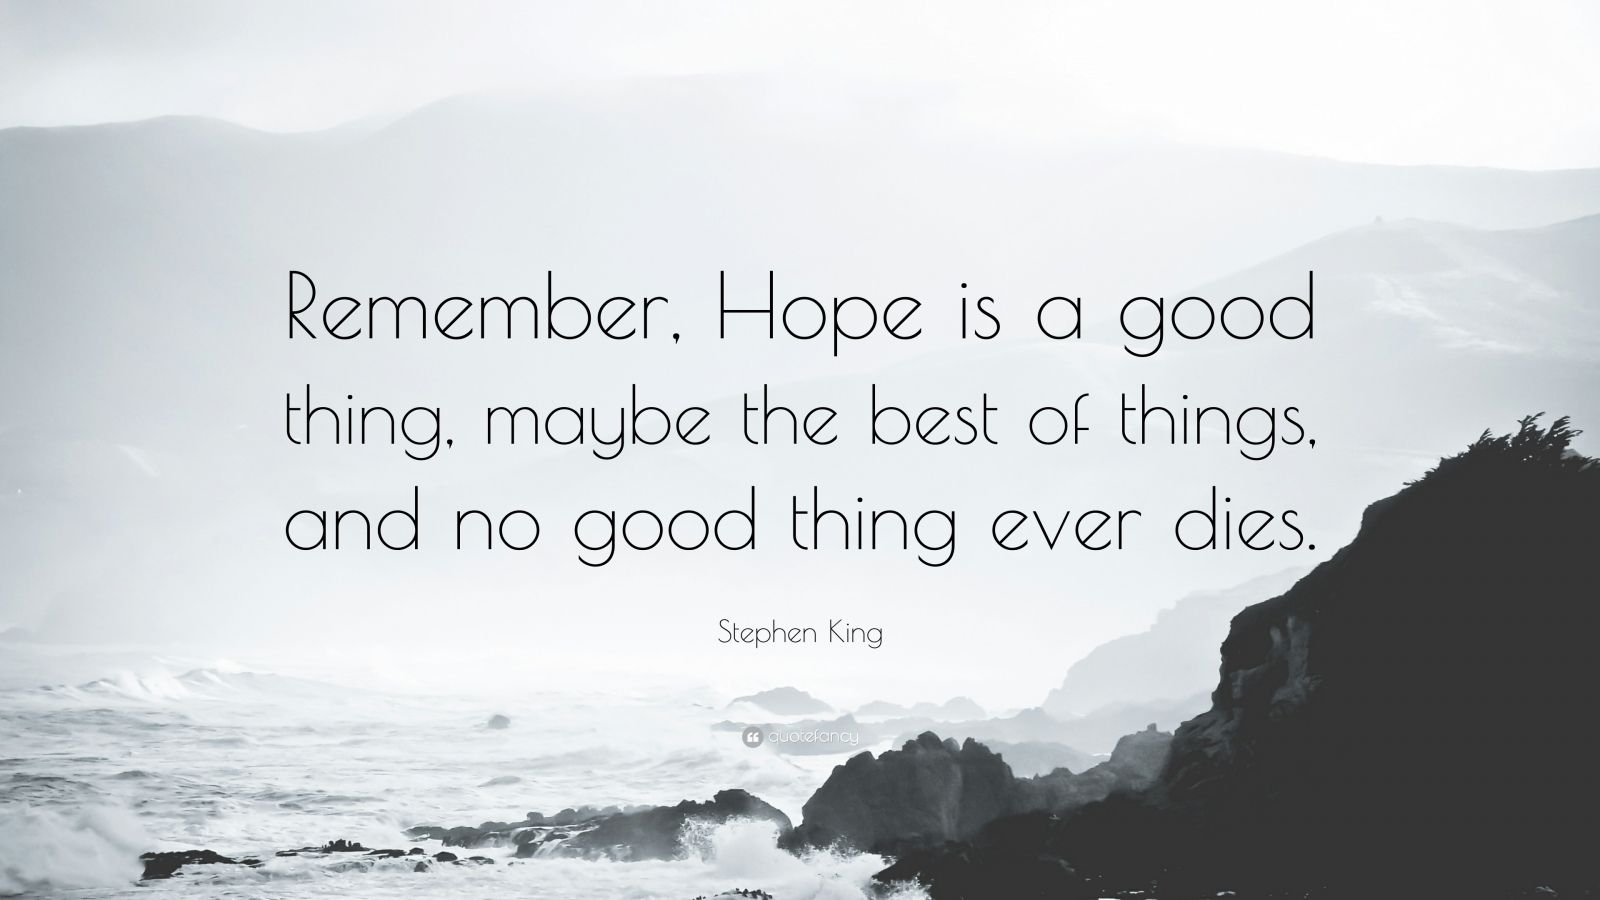 "Quotes About Hope: ""Remember, Hope is a good thing, maybe the best of things, and no good thing ever dies."" — Stephen King"